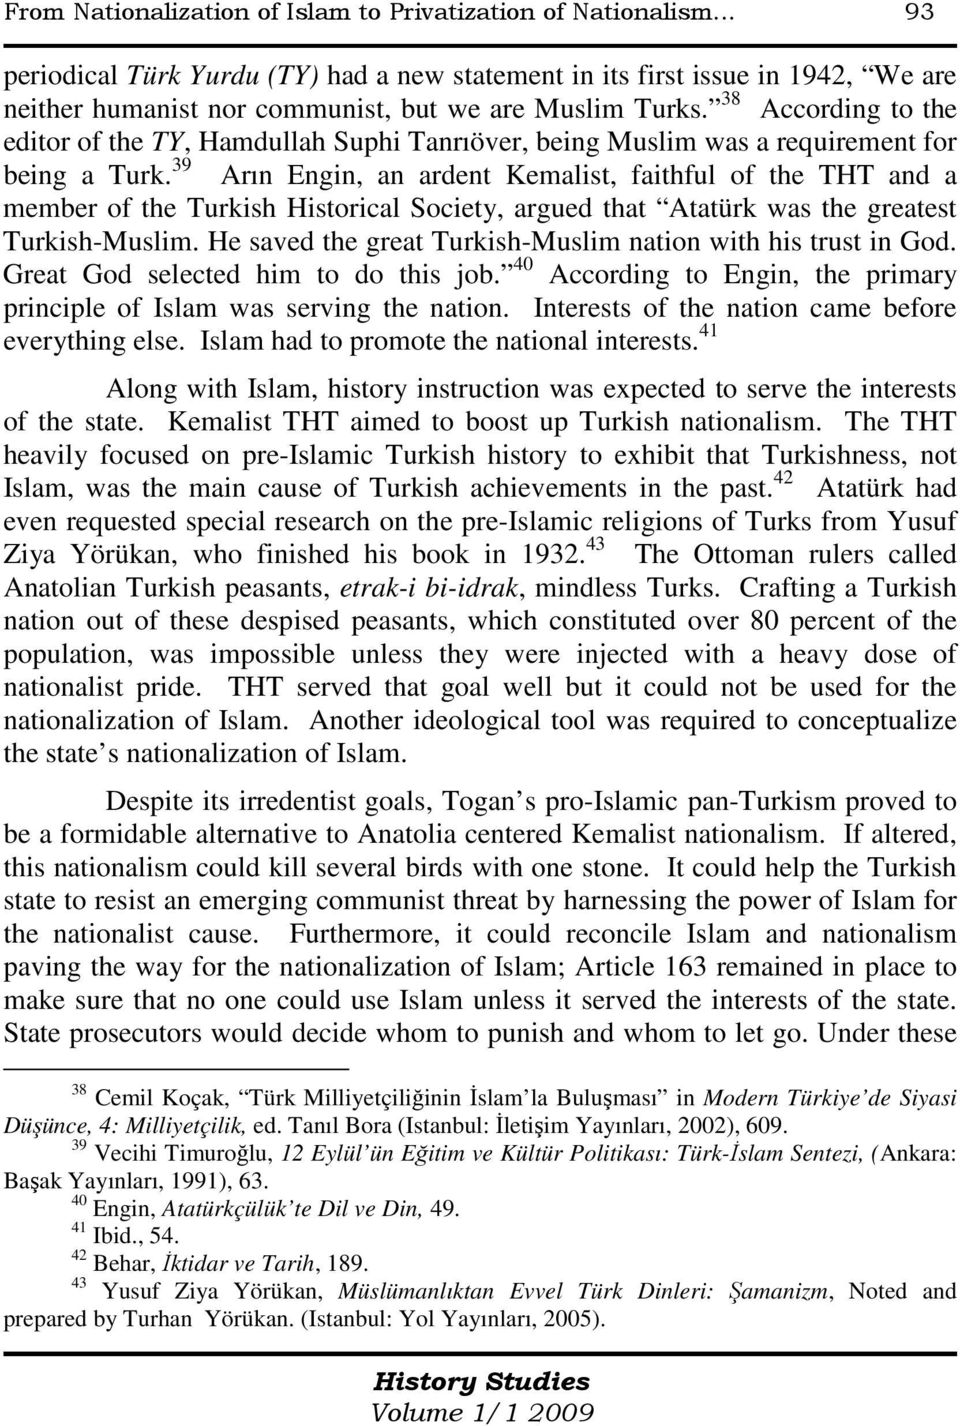 38 According to the editor of the TY, Hamdullah Suphi Tanrıöver, being Muslim was a requirement for being a Turk.